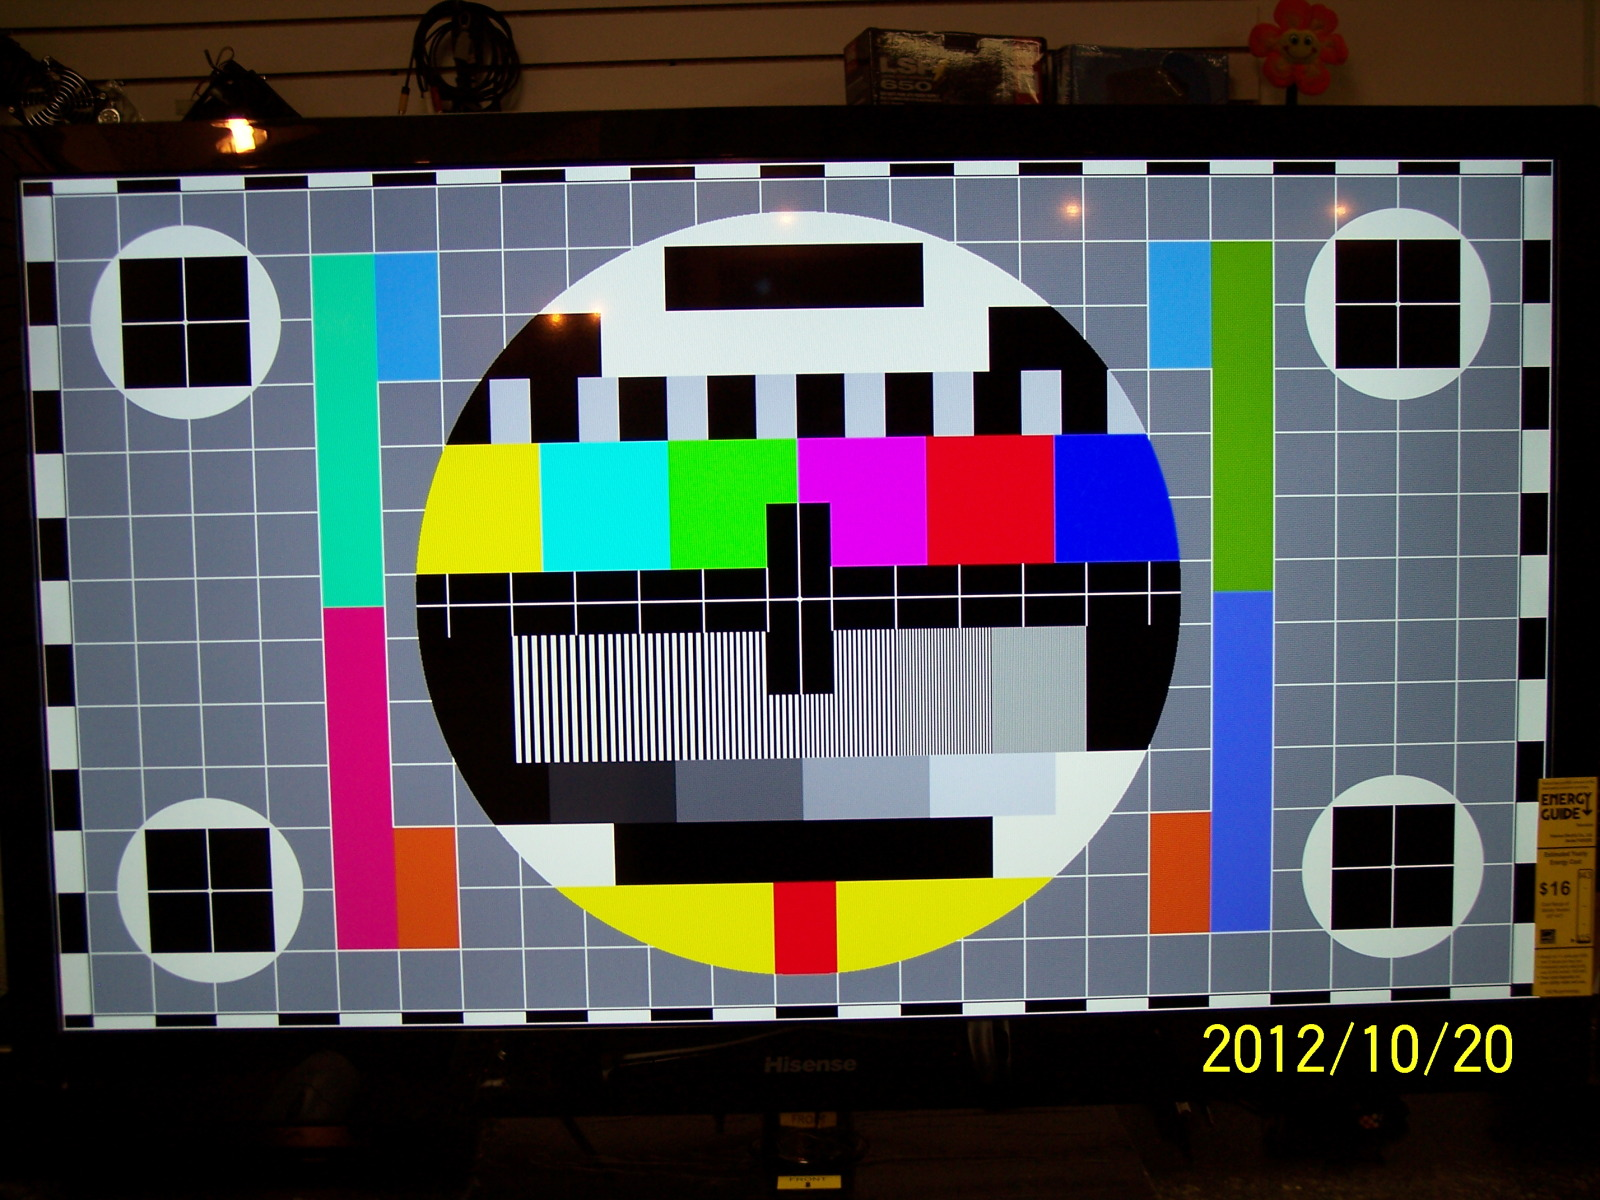 No image on display while cloned with the TV, but with image on TV 10o1qol.jpg